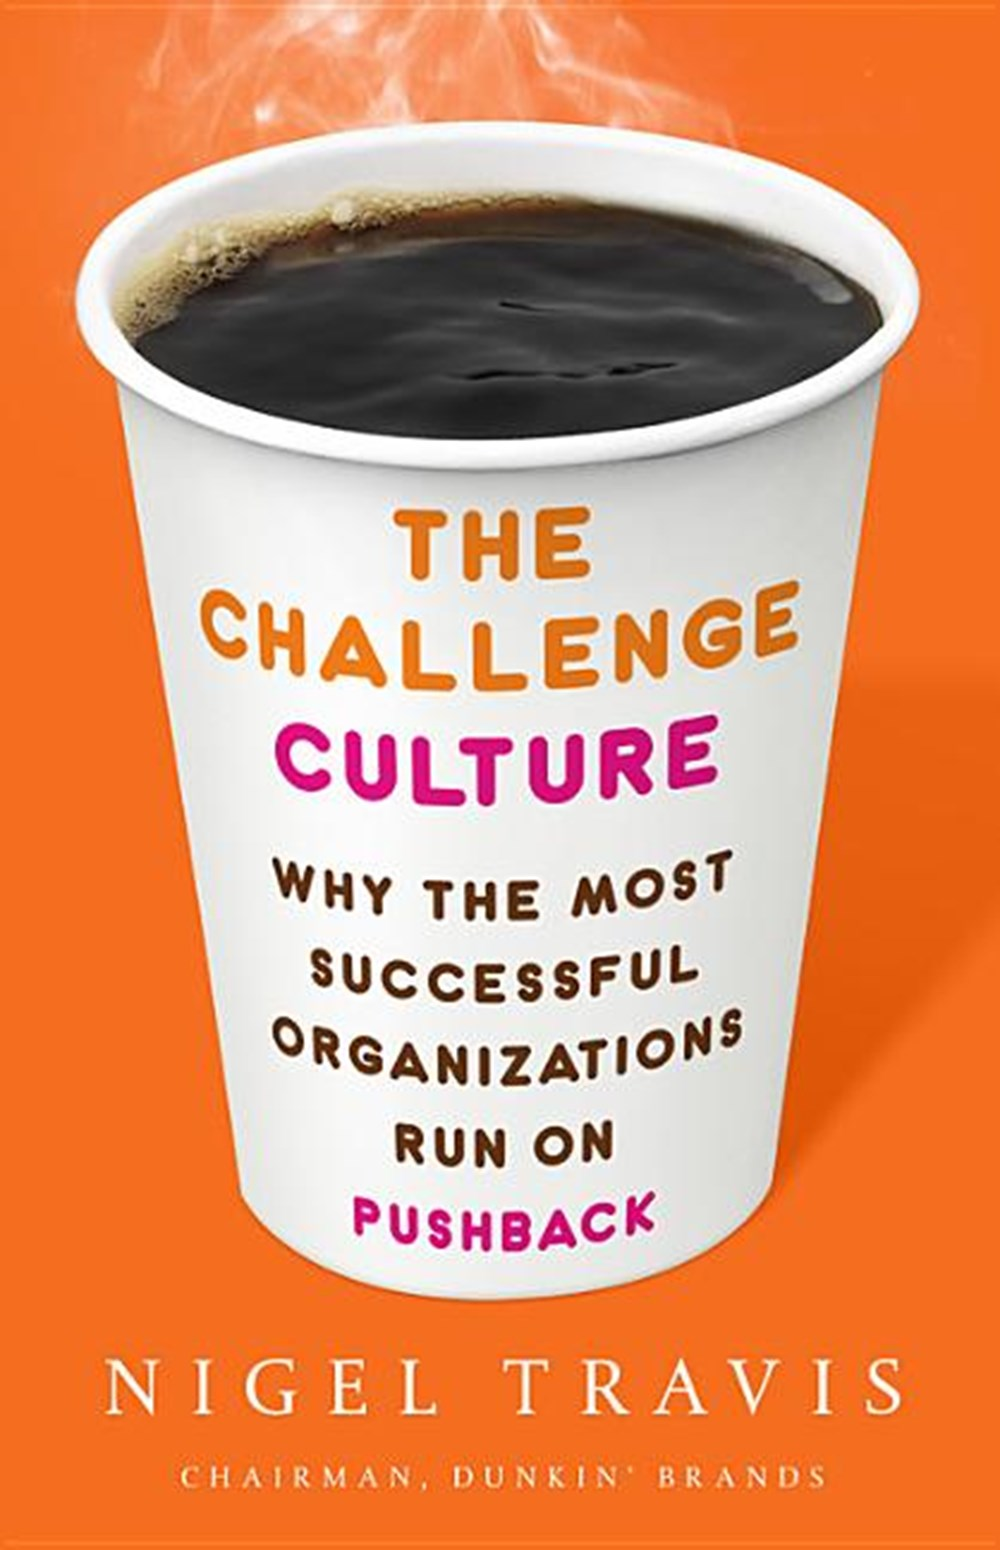 Challenge Culture Why the Most Successful Organizations Run on Pushback